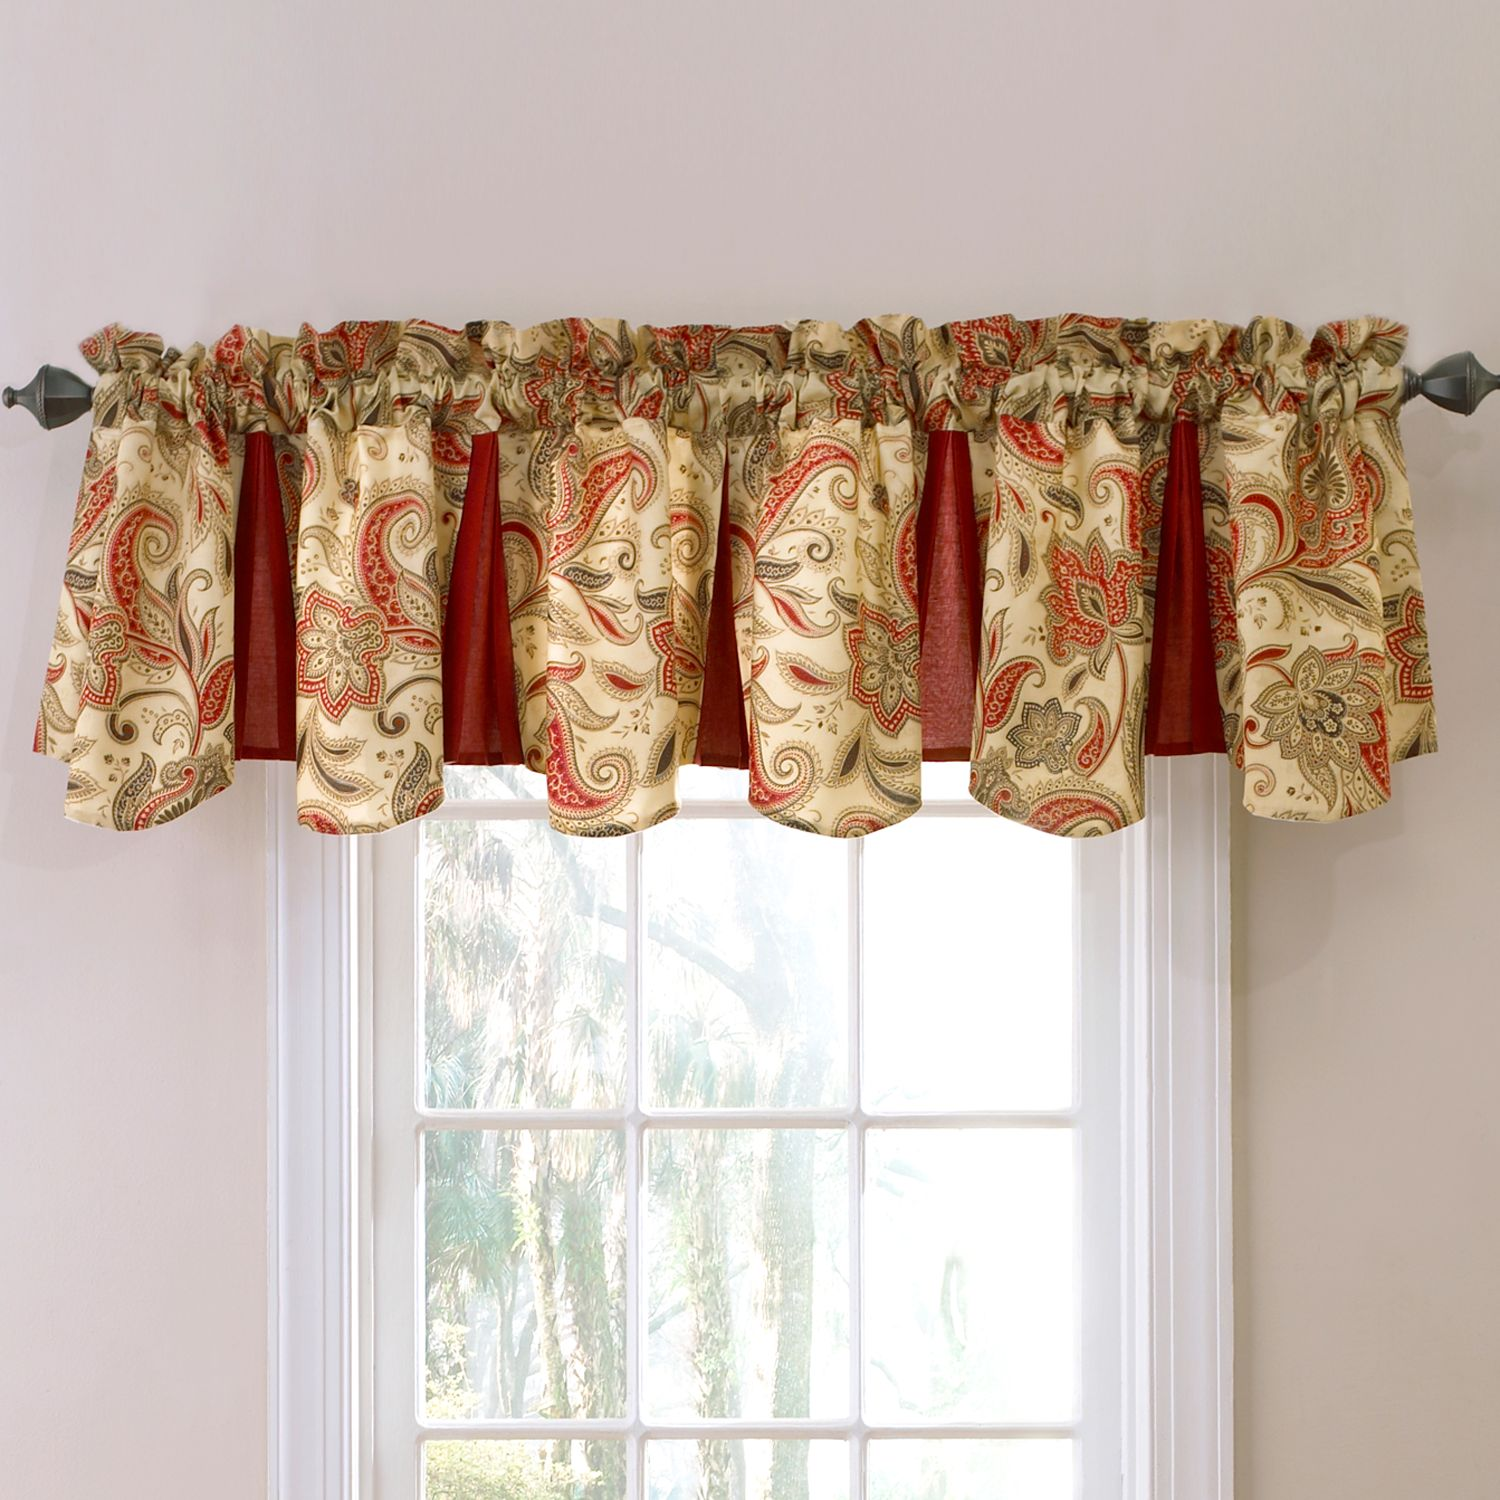 Waverly rustic retreat window valance 48 x 18 for 18 x 48 window